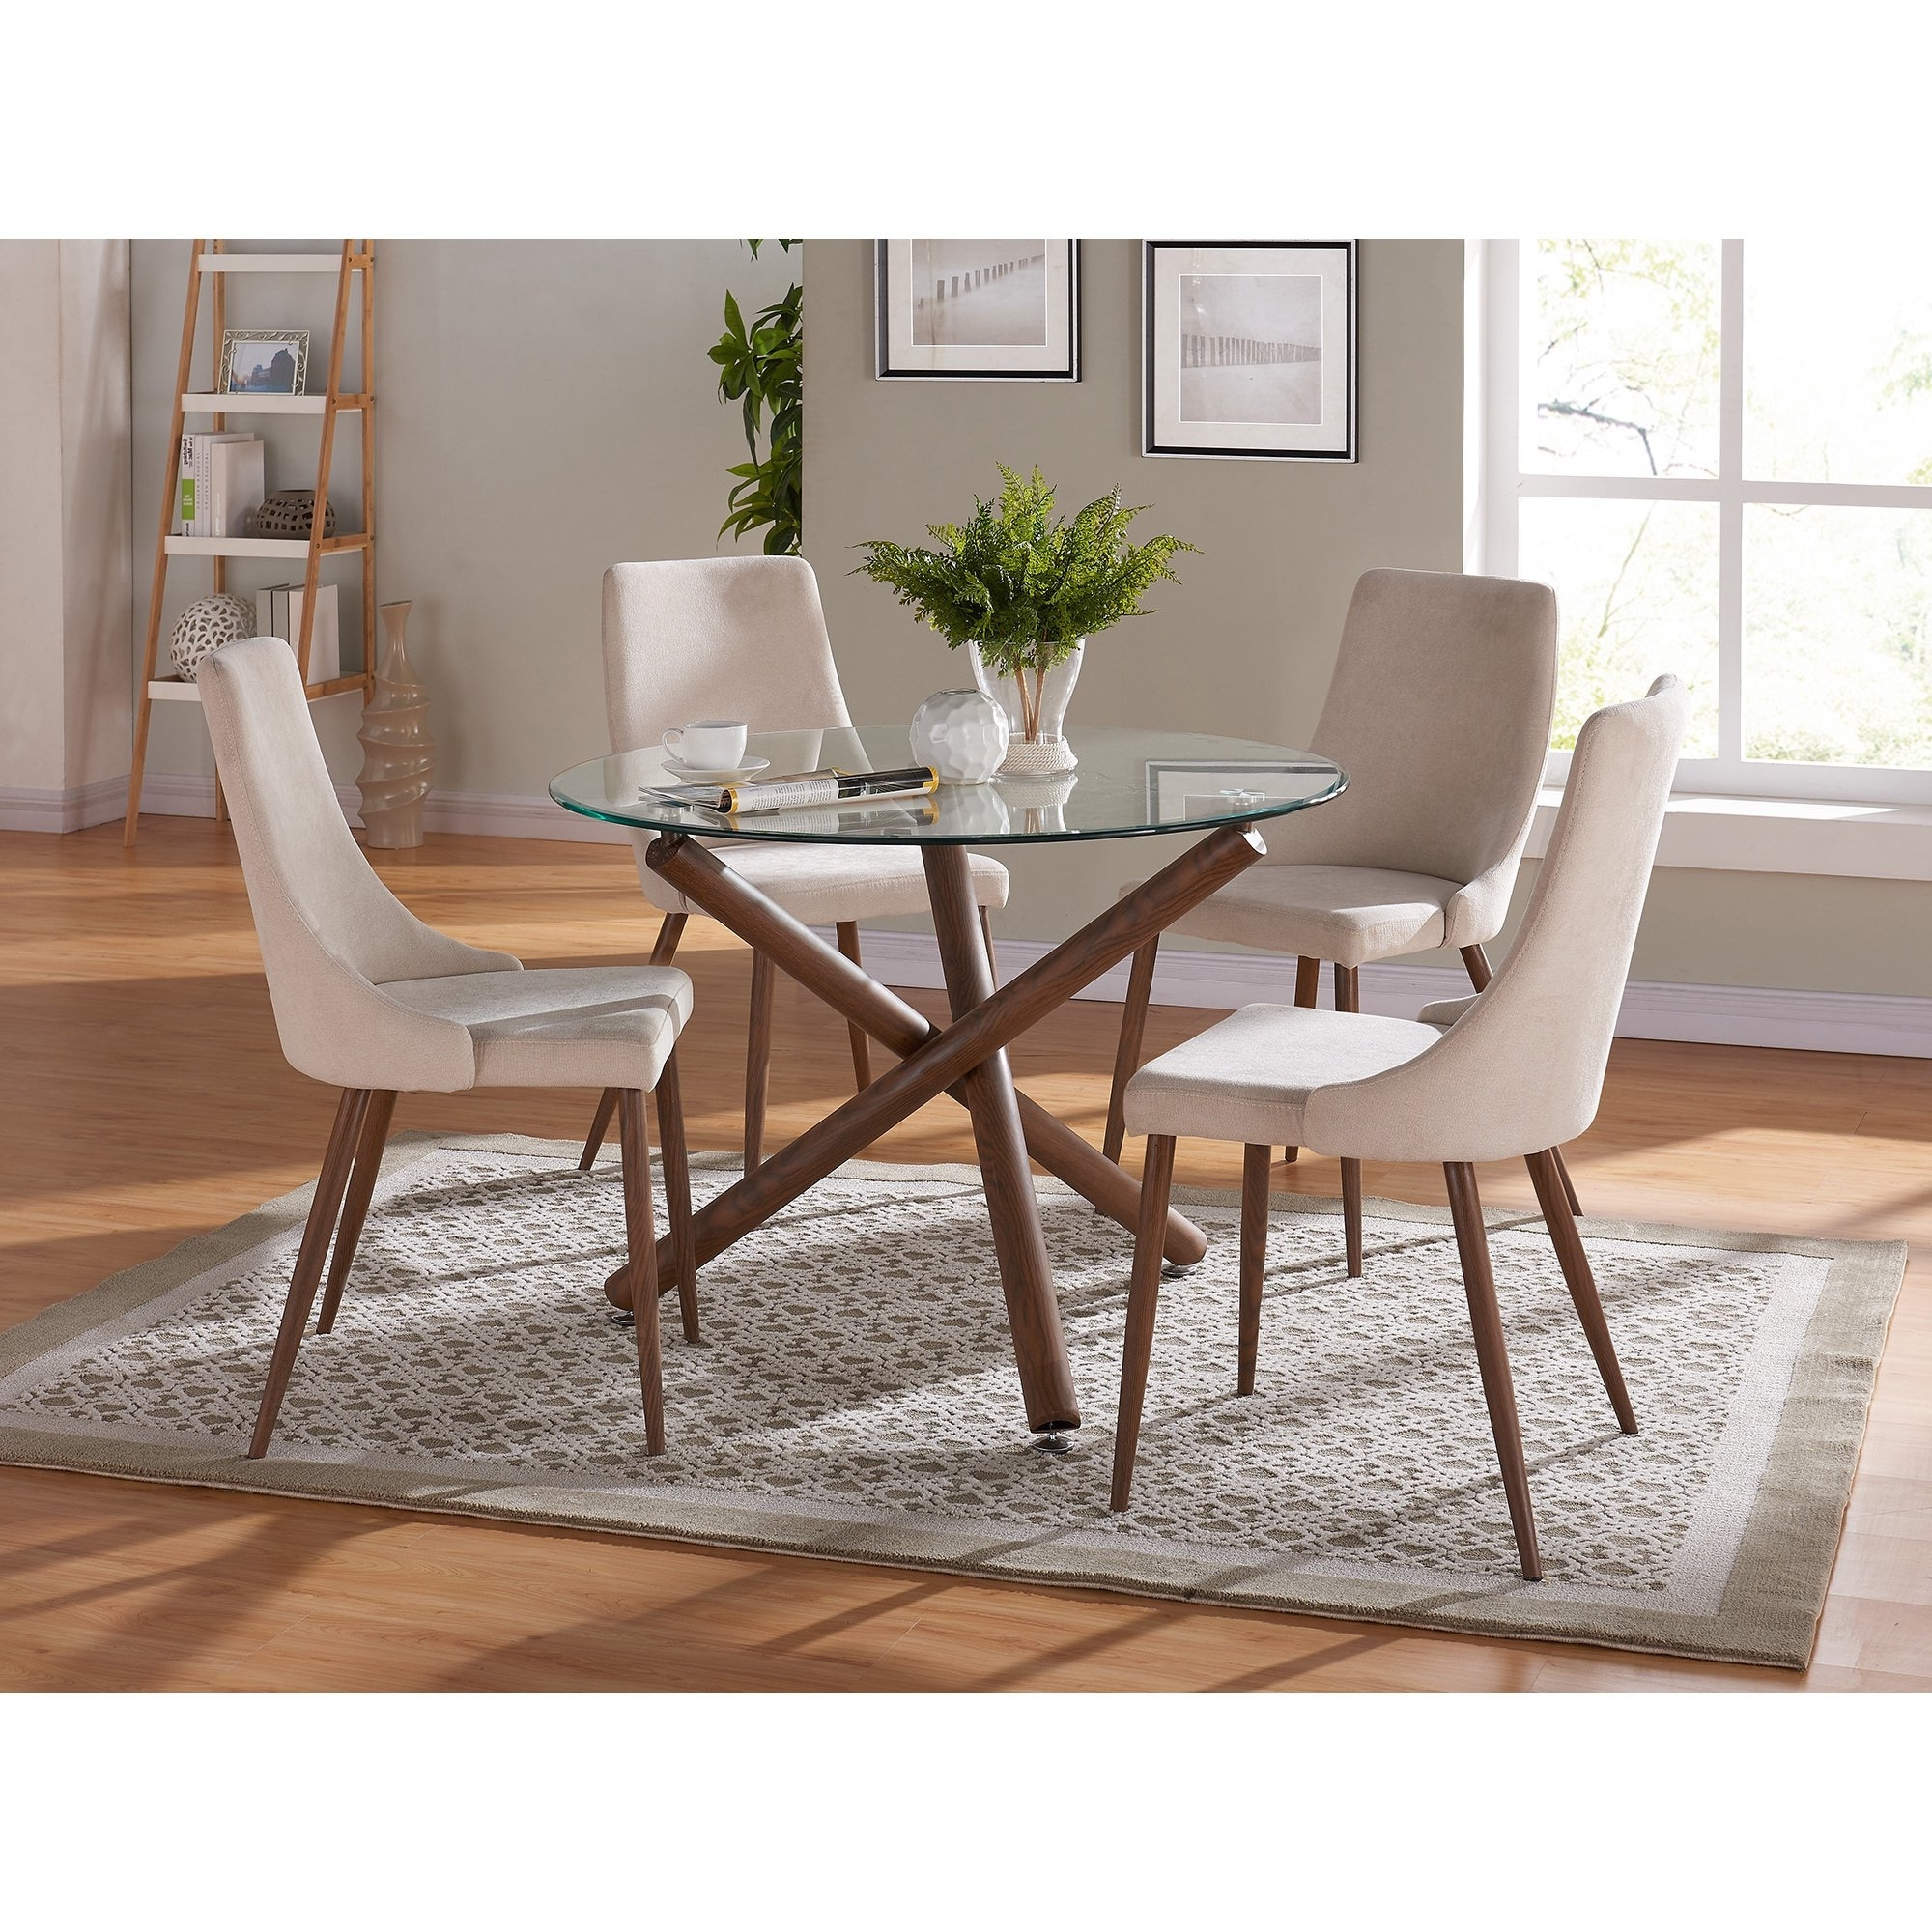 Fashionable Cora 5 Piece Dining Sets Inside Shop Carson Carrington Kaskinen Dining Chair (Set Of 2) – Free (View 16 of 25)